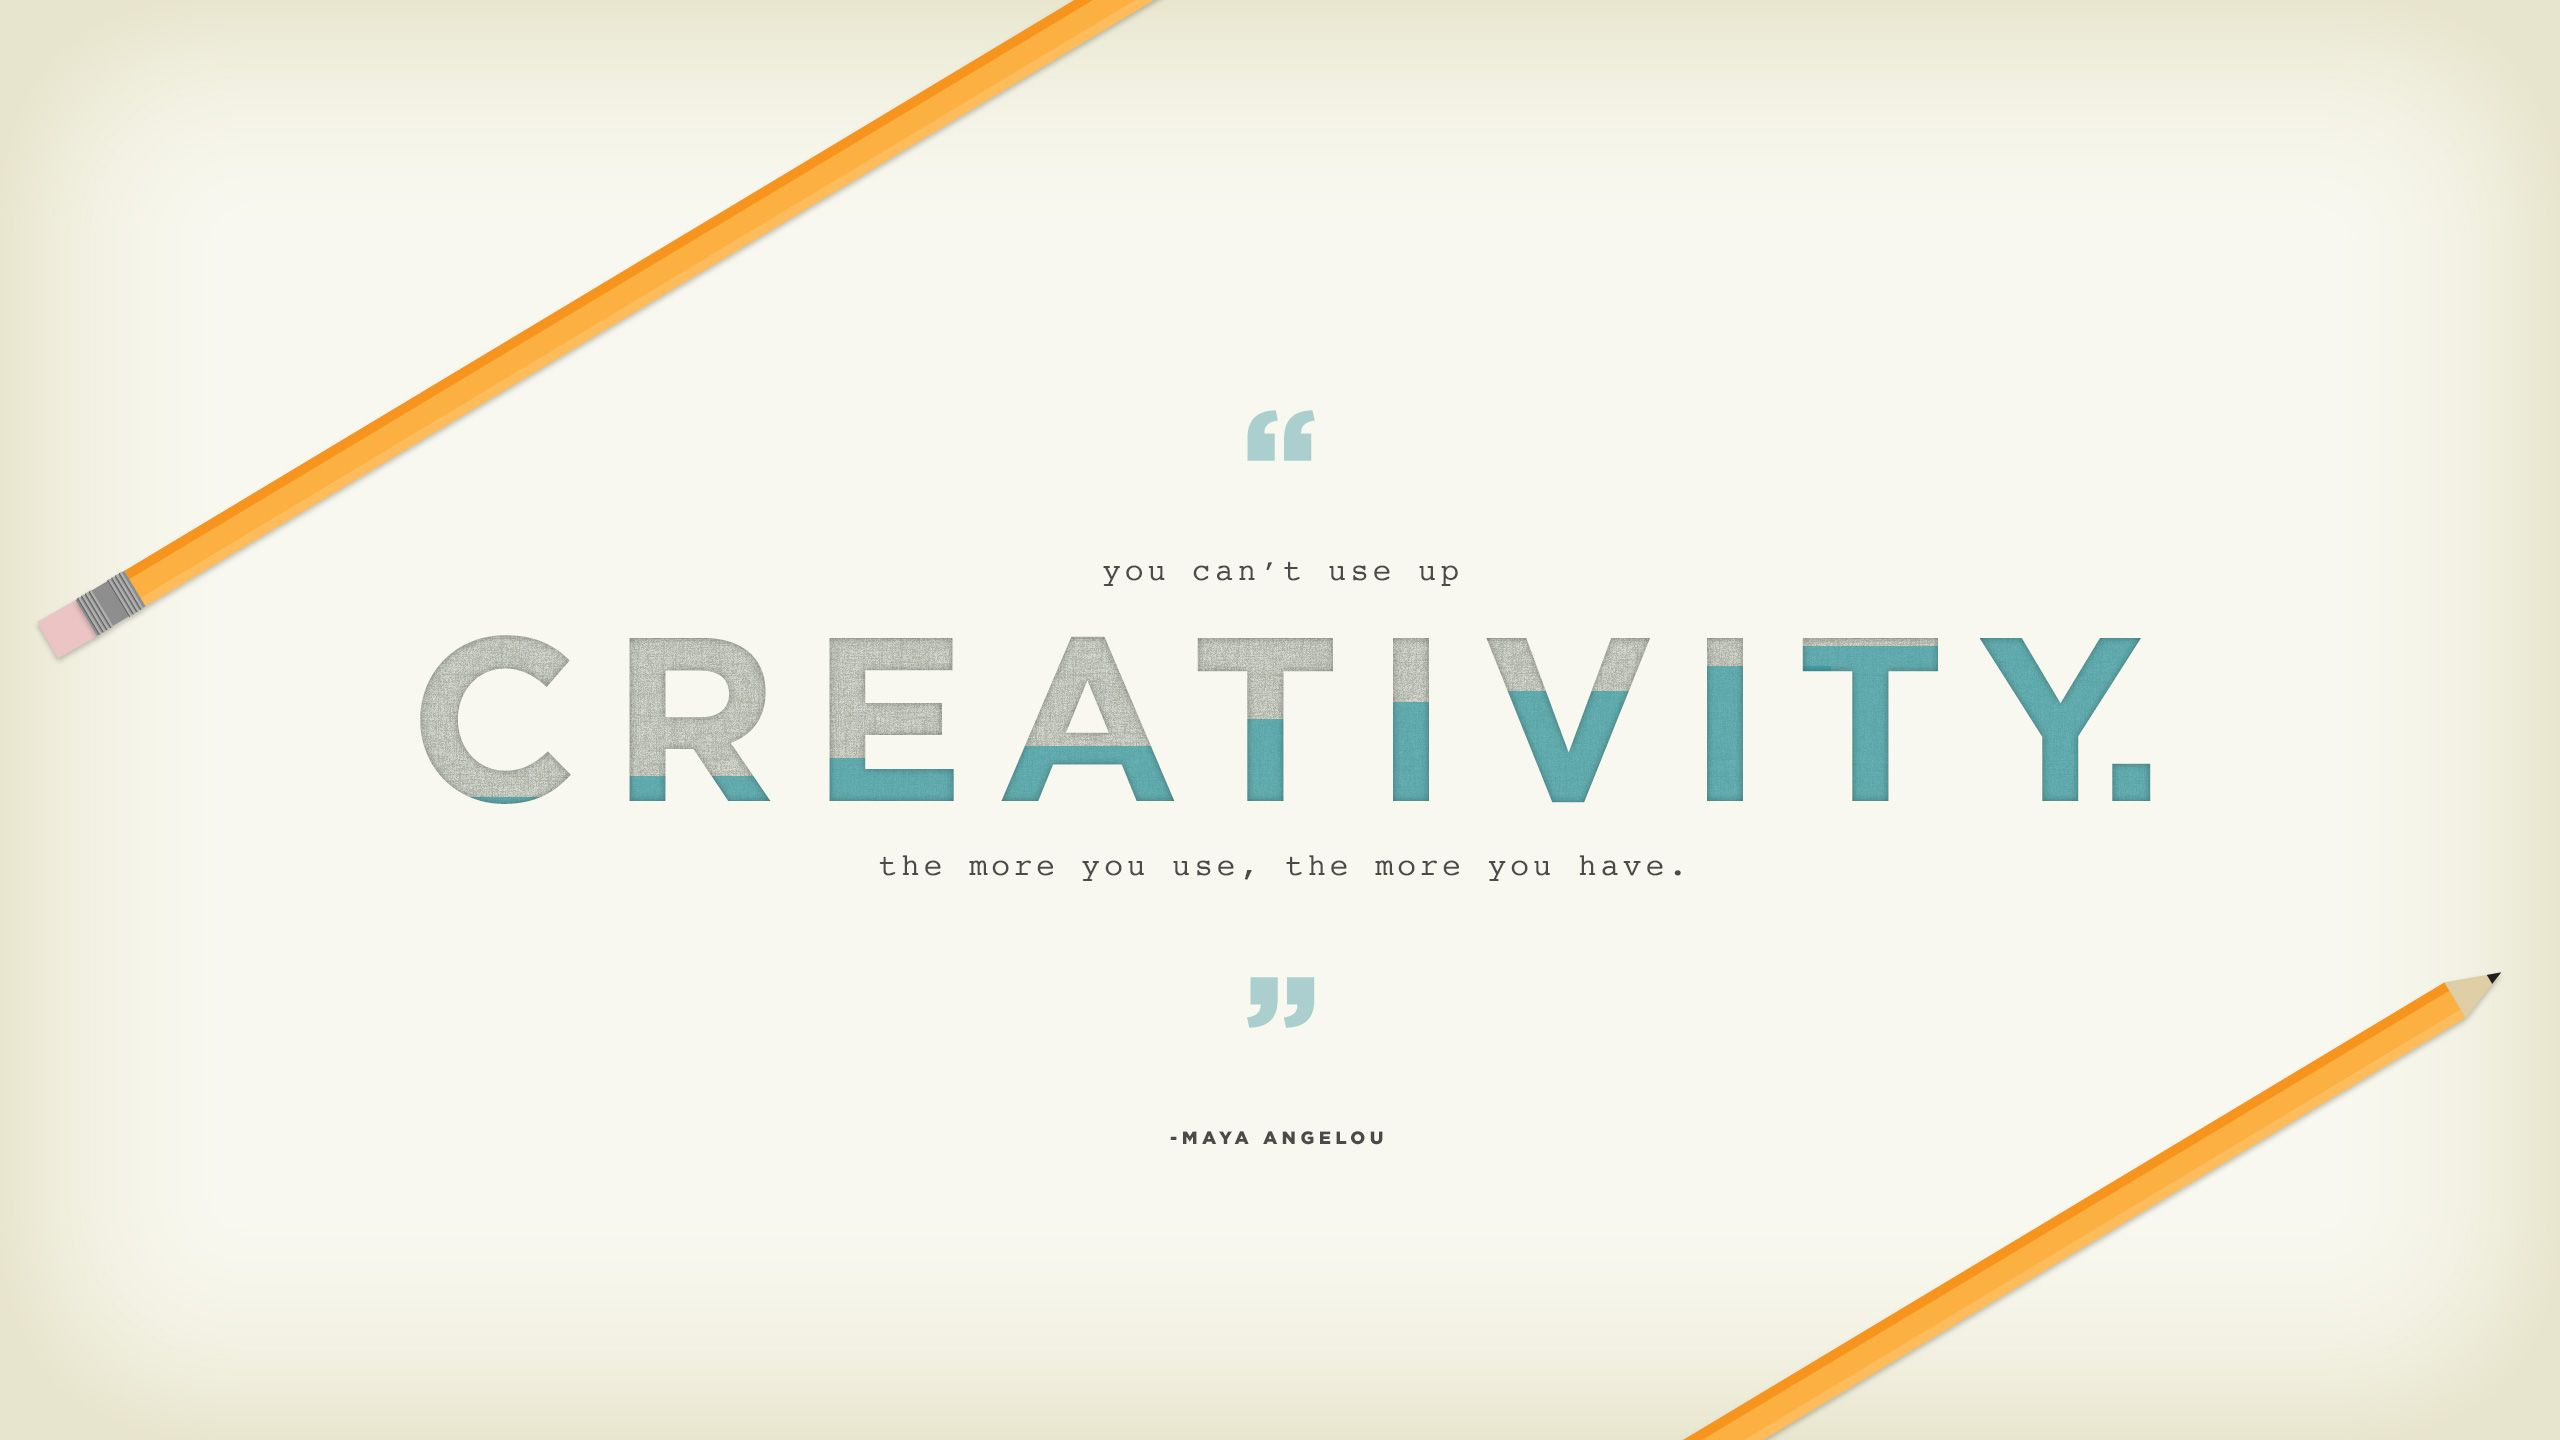 Google chrome themes quotes - Creativity Quotes Google Search